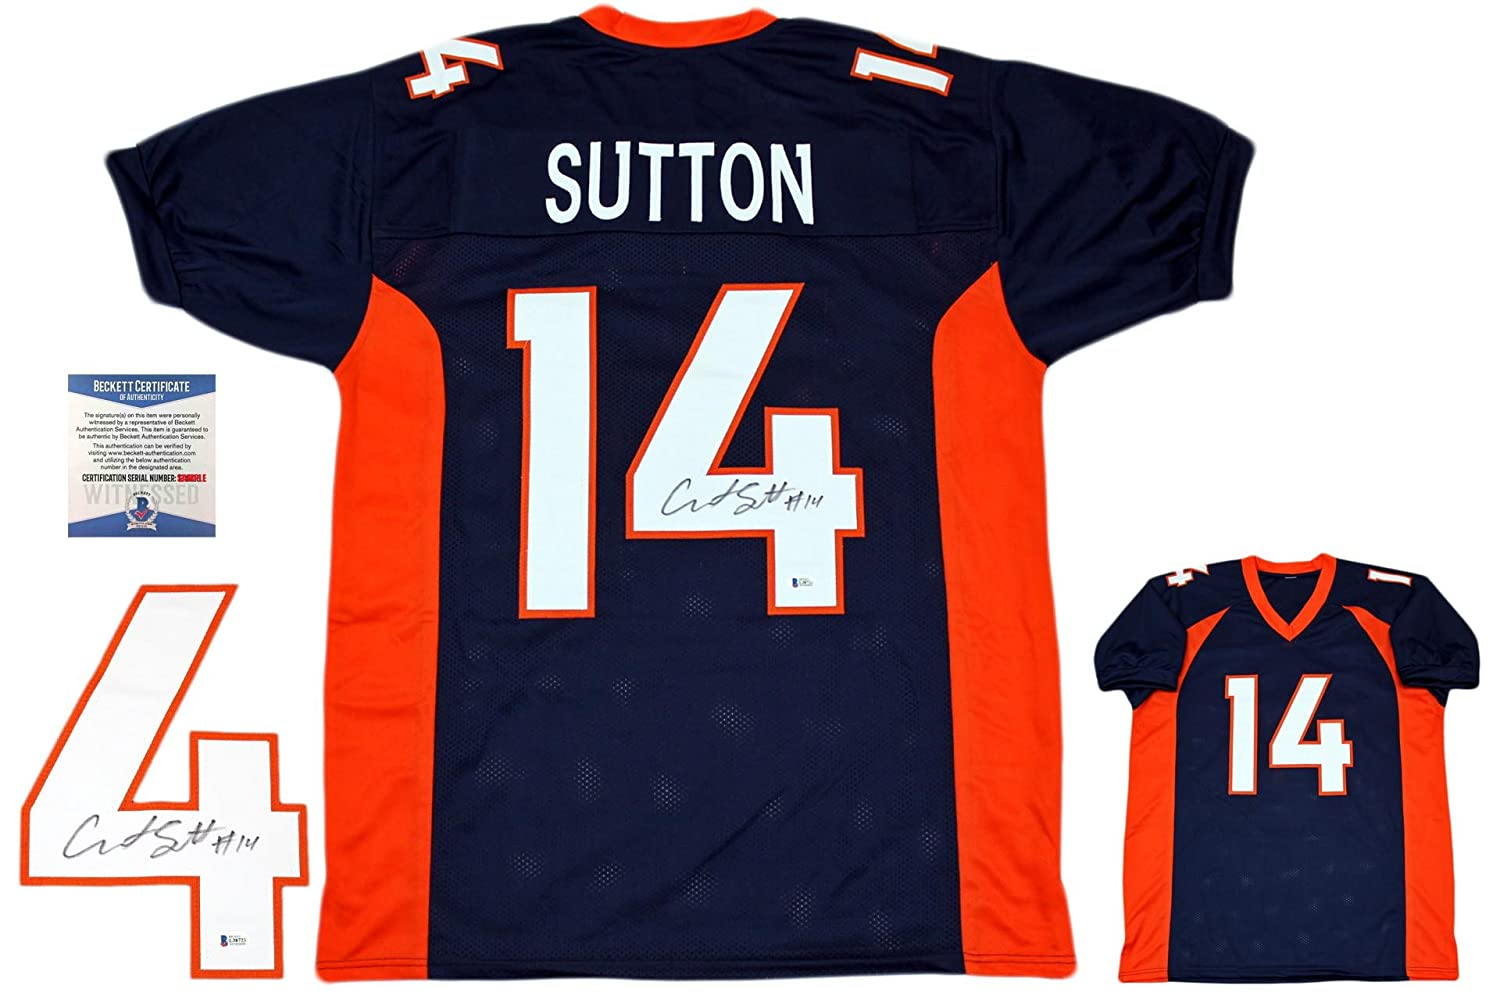 e109e83c57c Courtland Sutton Autographed Signed Jersey - Beckett Authentic - Navy at  Amazon s Sports Collectibles Store